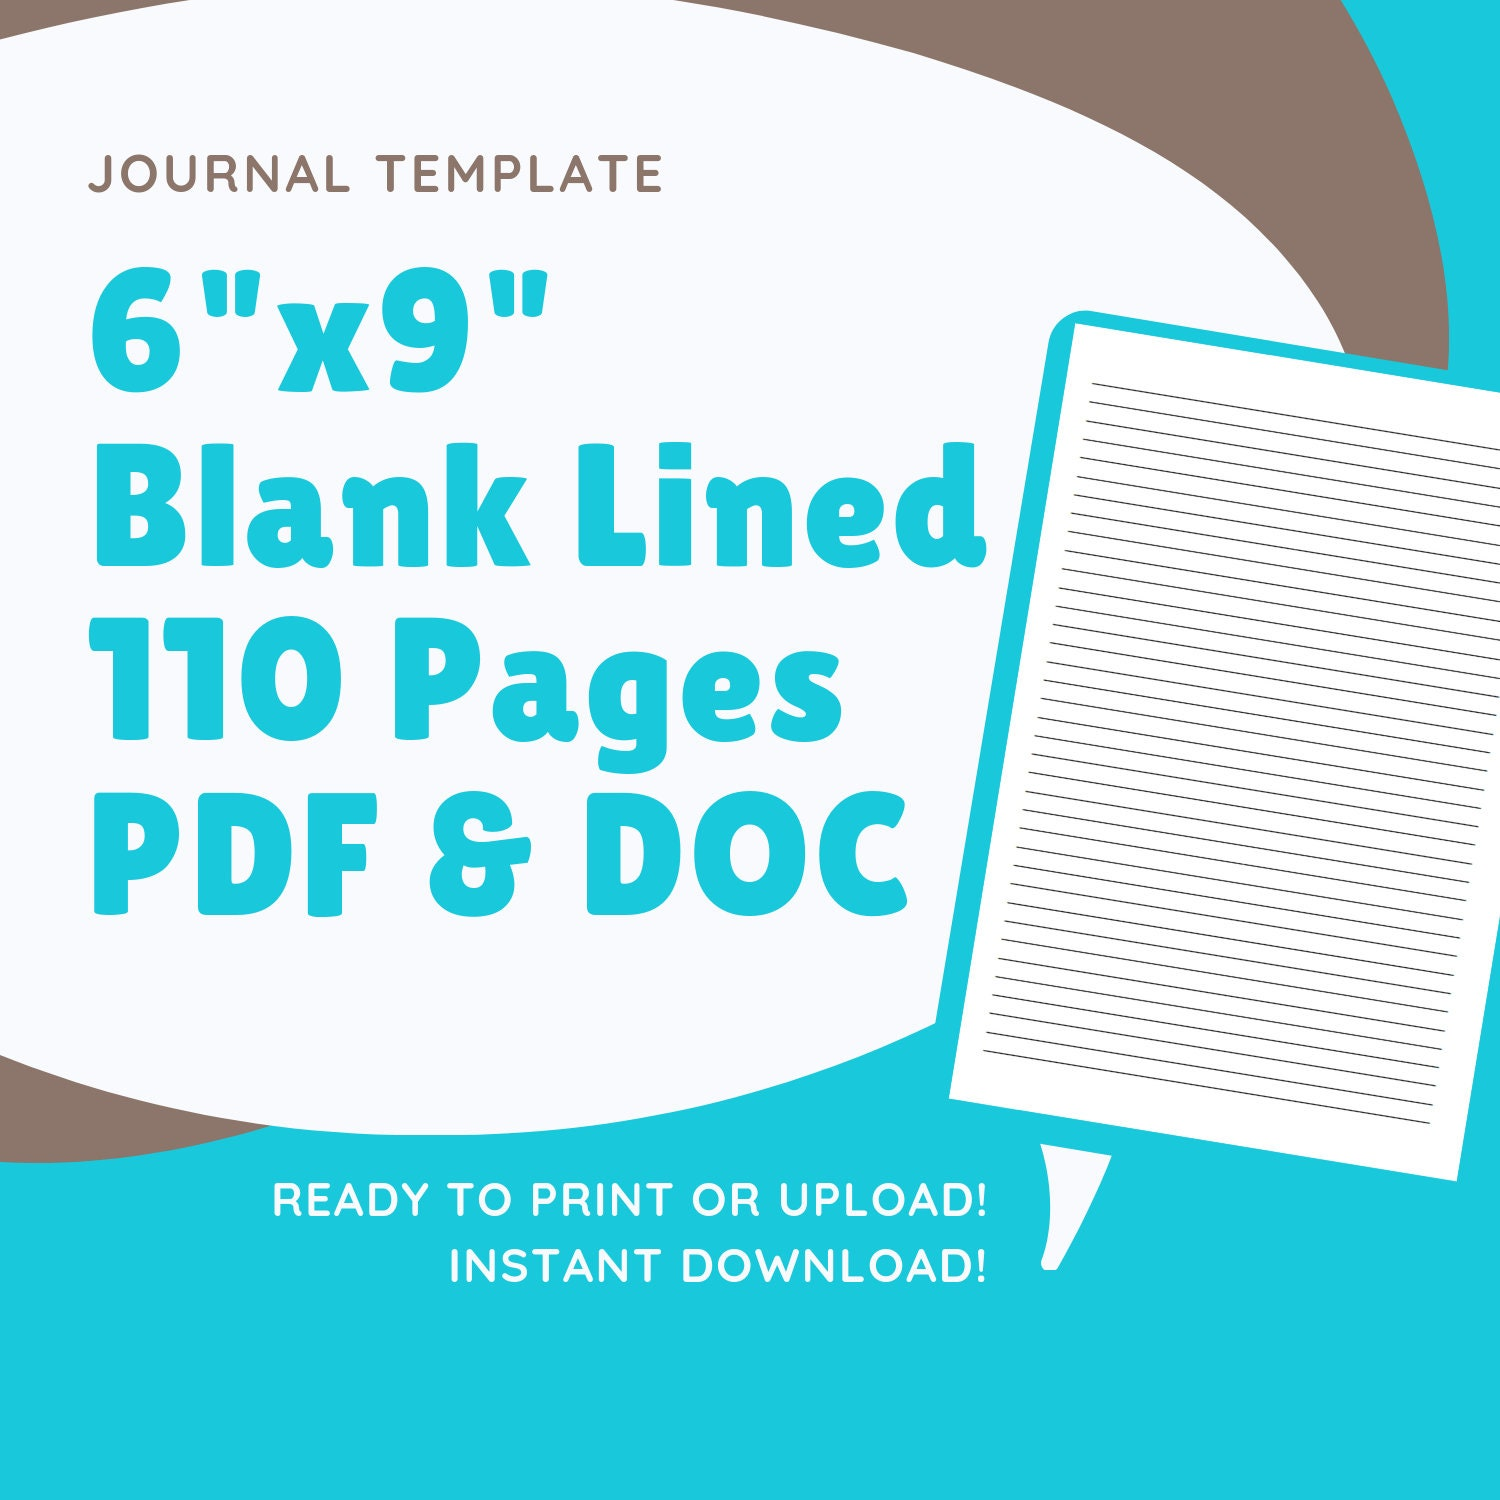 6x9 Blank Lined Journal Template Instant Download Kdp Etsy